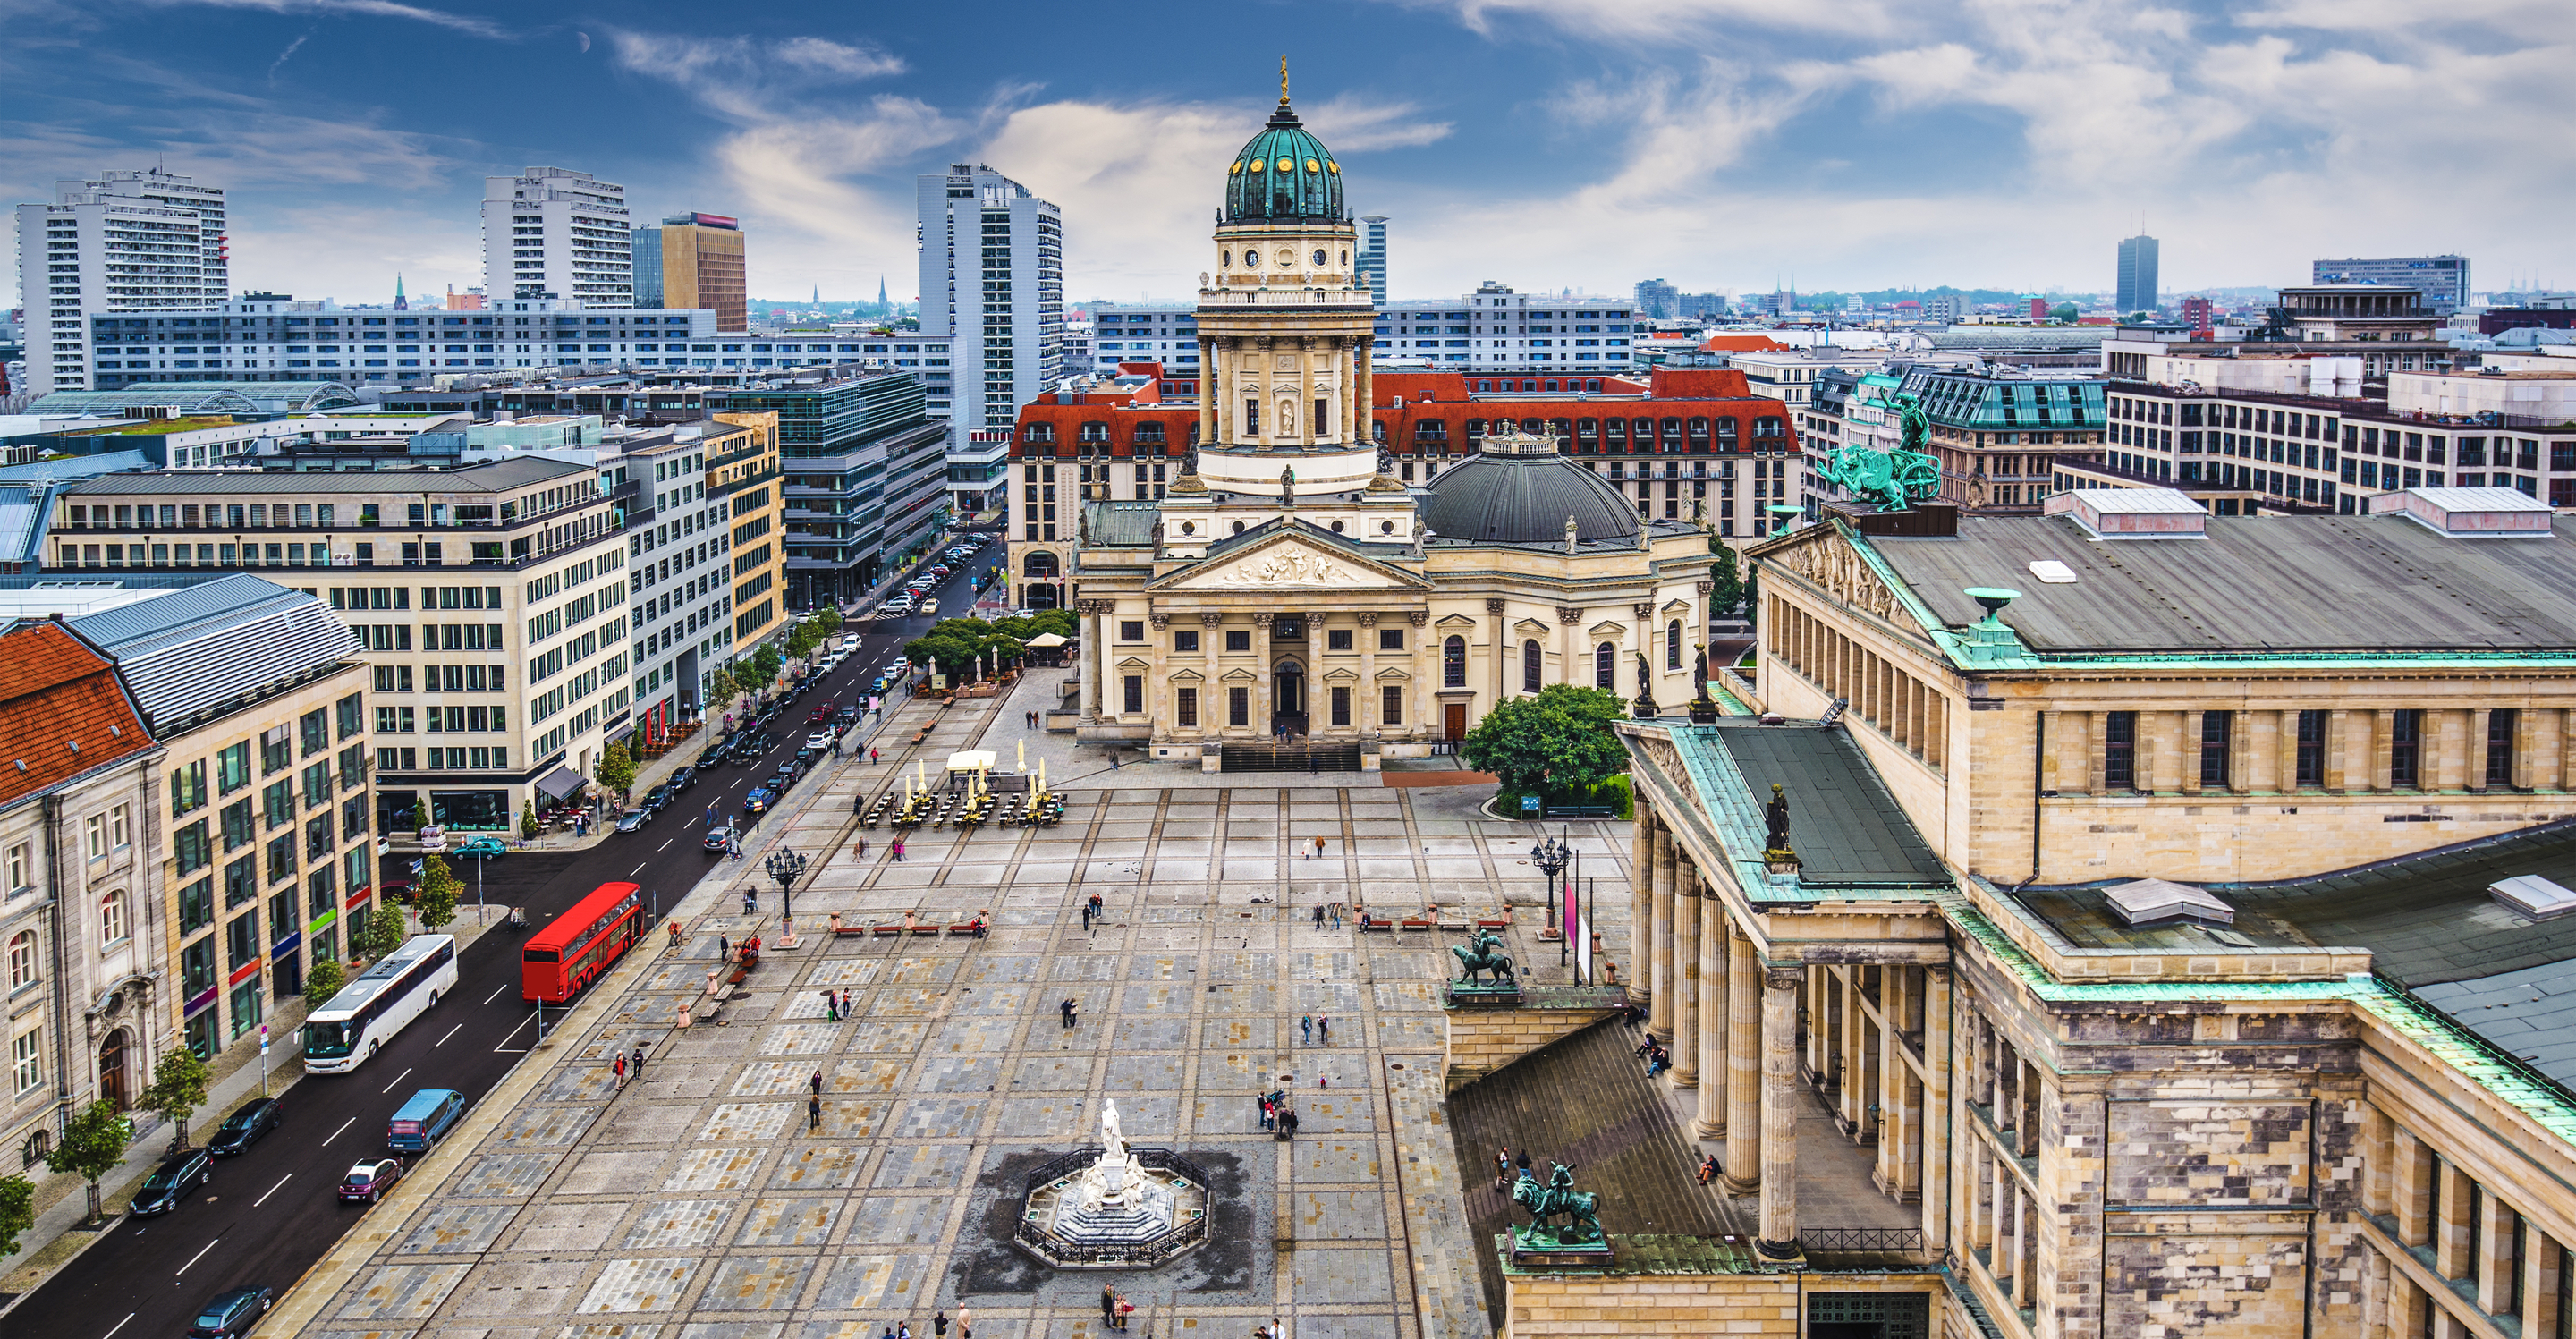 berlin city hop on hop off tour with optional cruise 2019